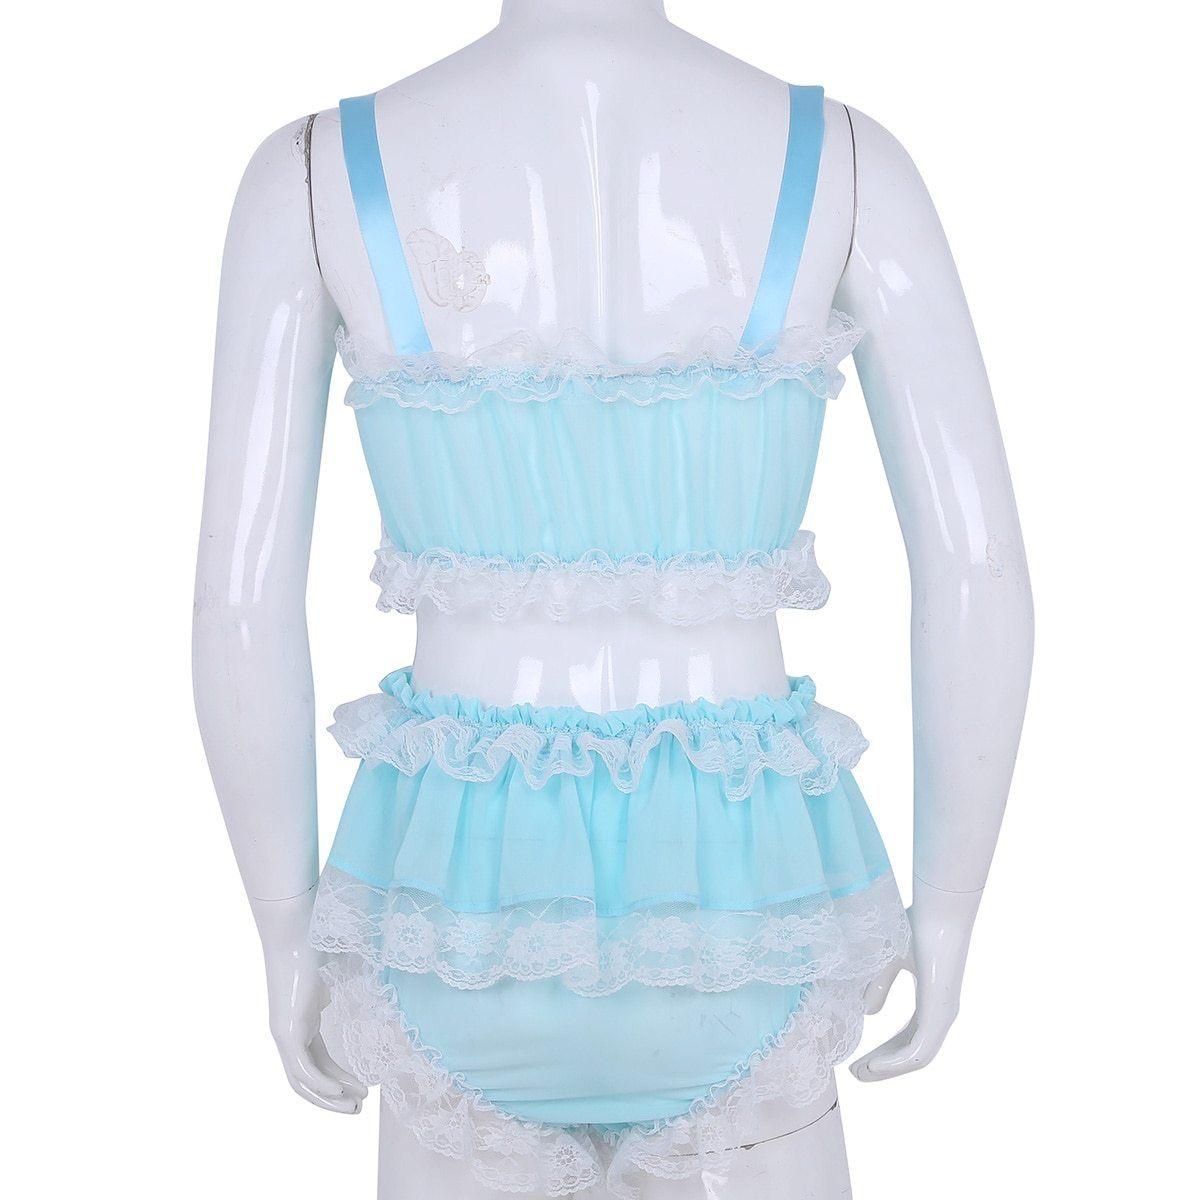 Ruffled Lace & Bowknots Lingerie Set Sissy Panty Shop